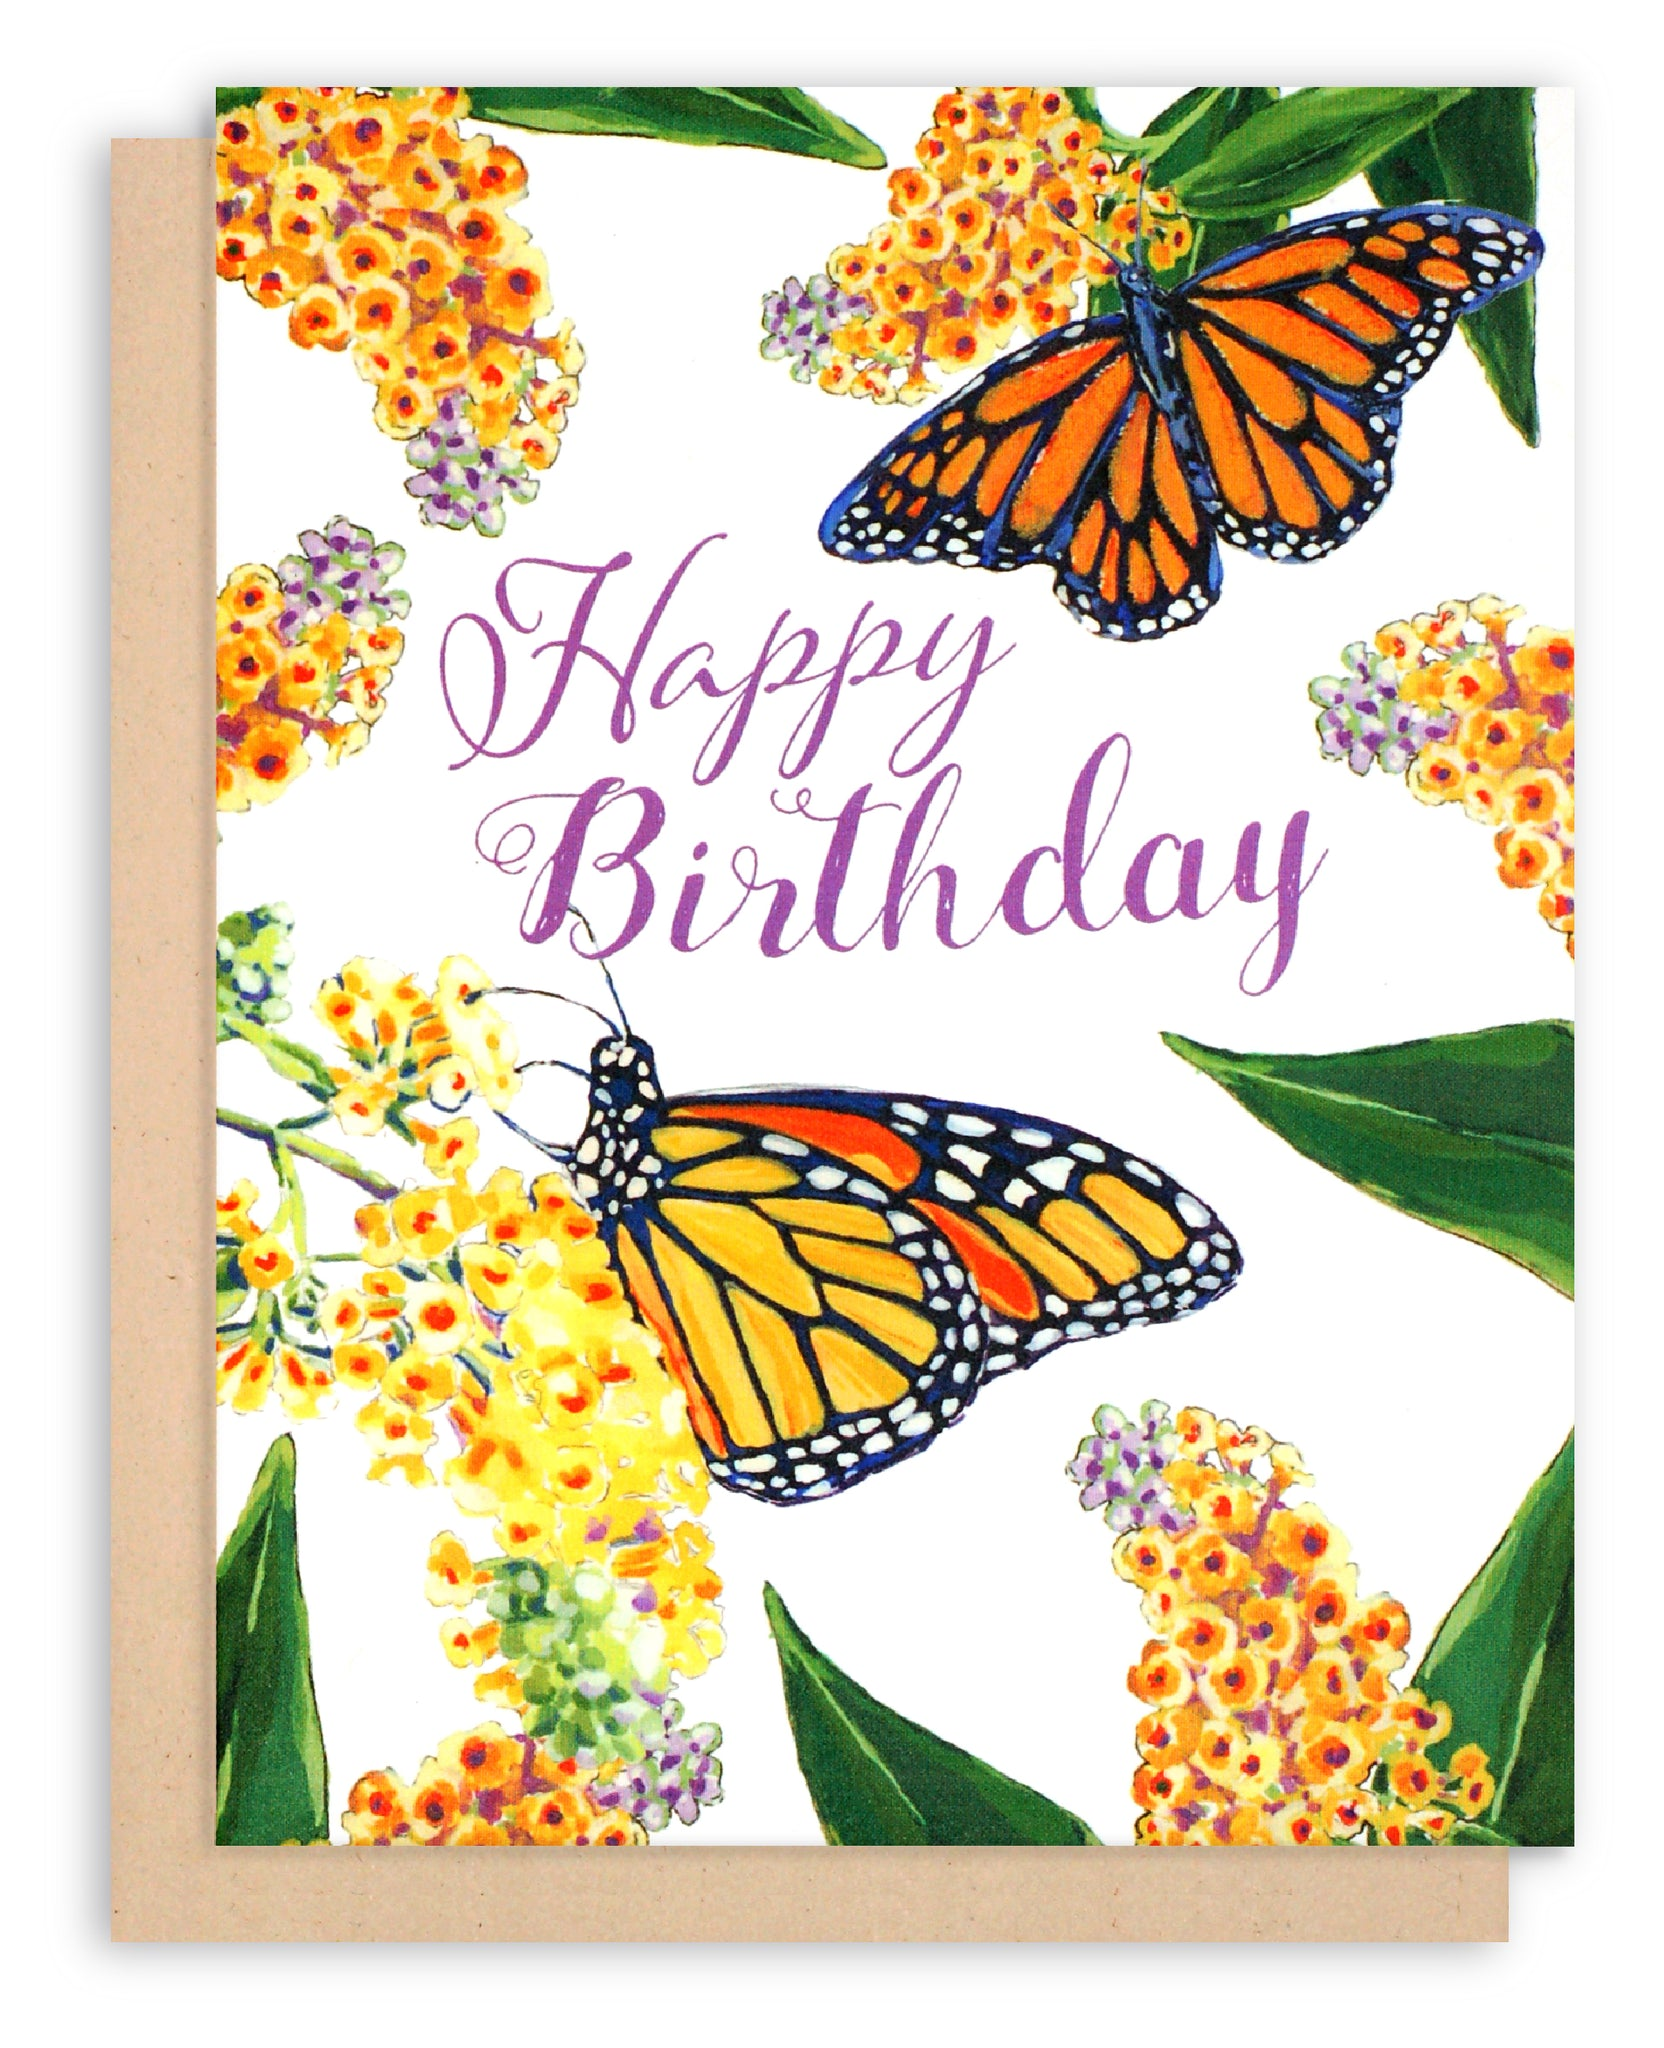 happy birthday butterfly images Monarch Butterfly Greeting Card   Monarch Butterfly Happy Birthday  happy birthday butterfly images